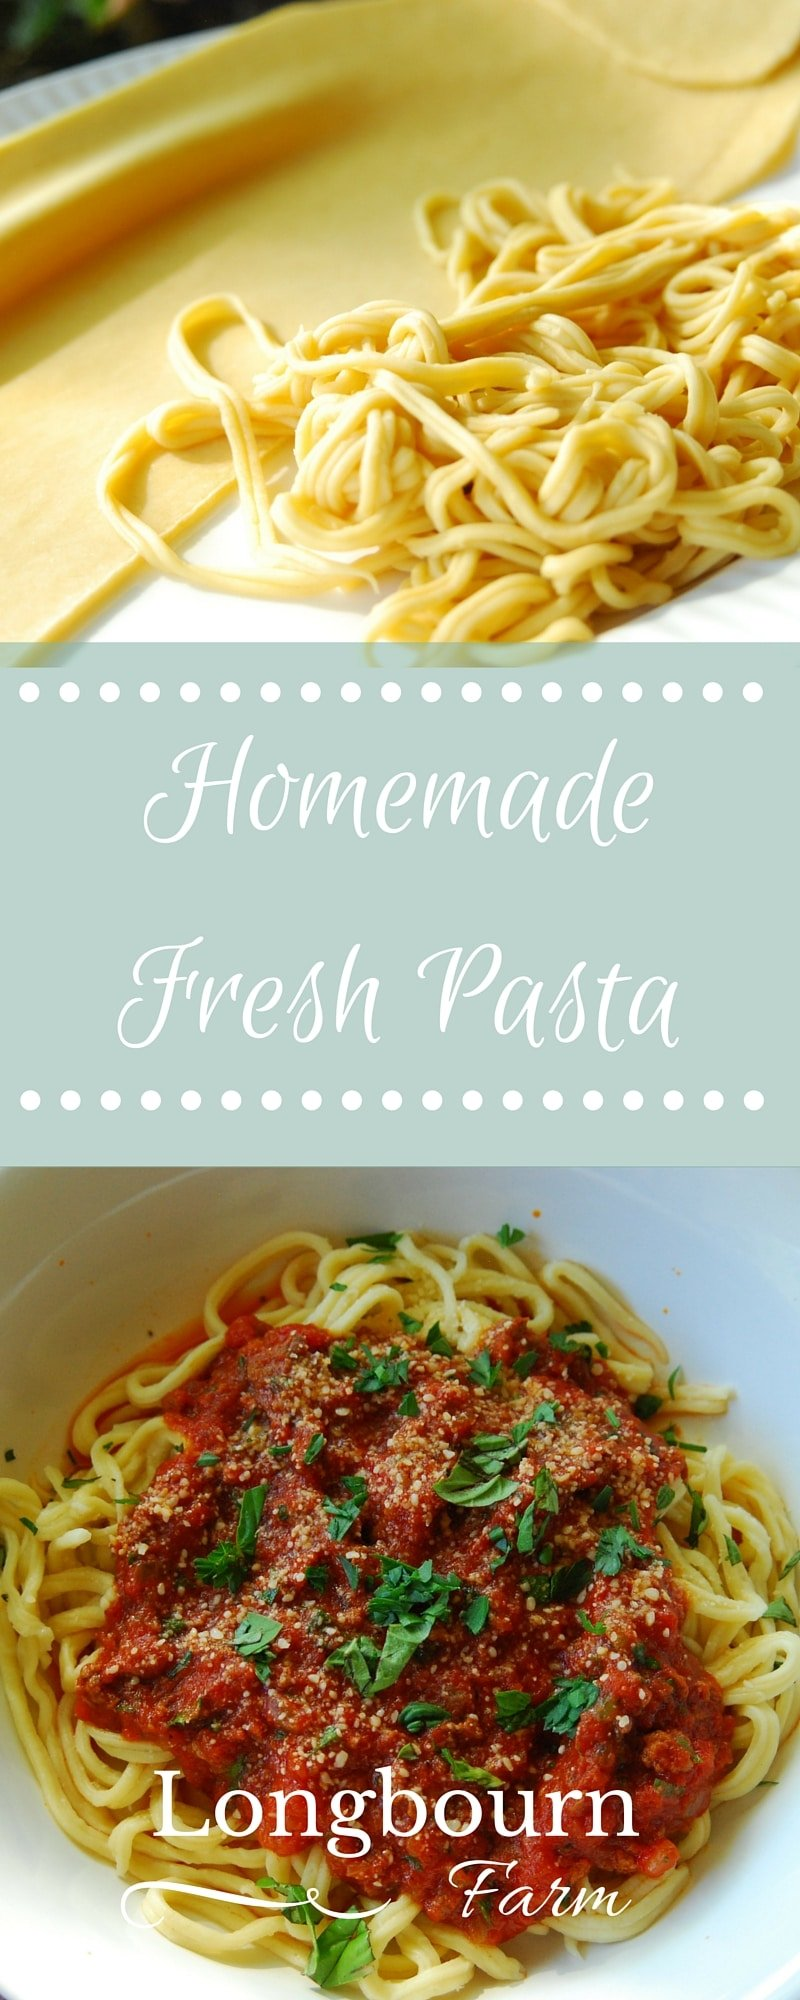 Making your own pasta dough is easier than you think! Get all the details and tips you'll need to wow your family with fresh pasta for dinner tonight! via @longbournfarm